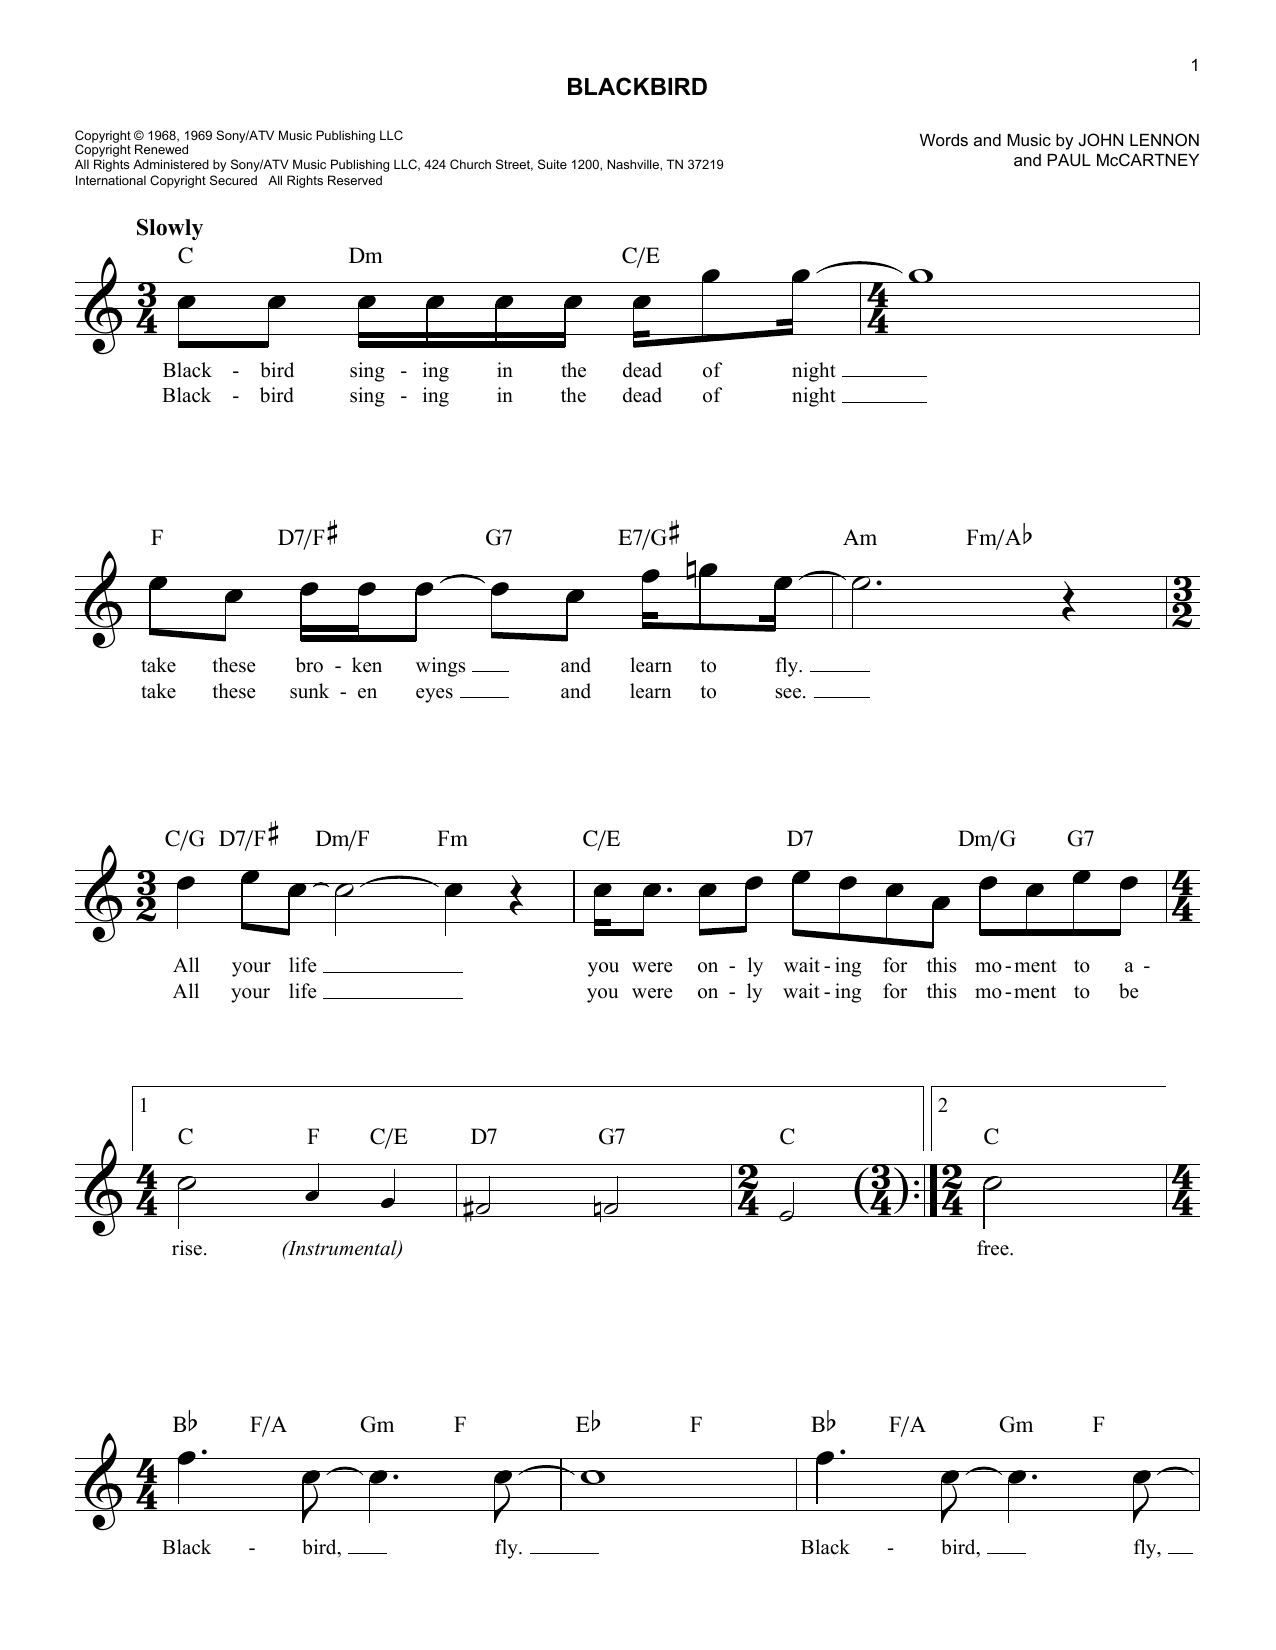 Blackbird chords by the beatles melody line lyrics chords blackbird sheet music hexwebz Images